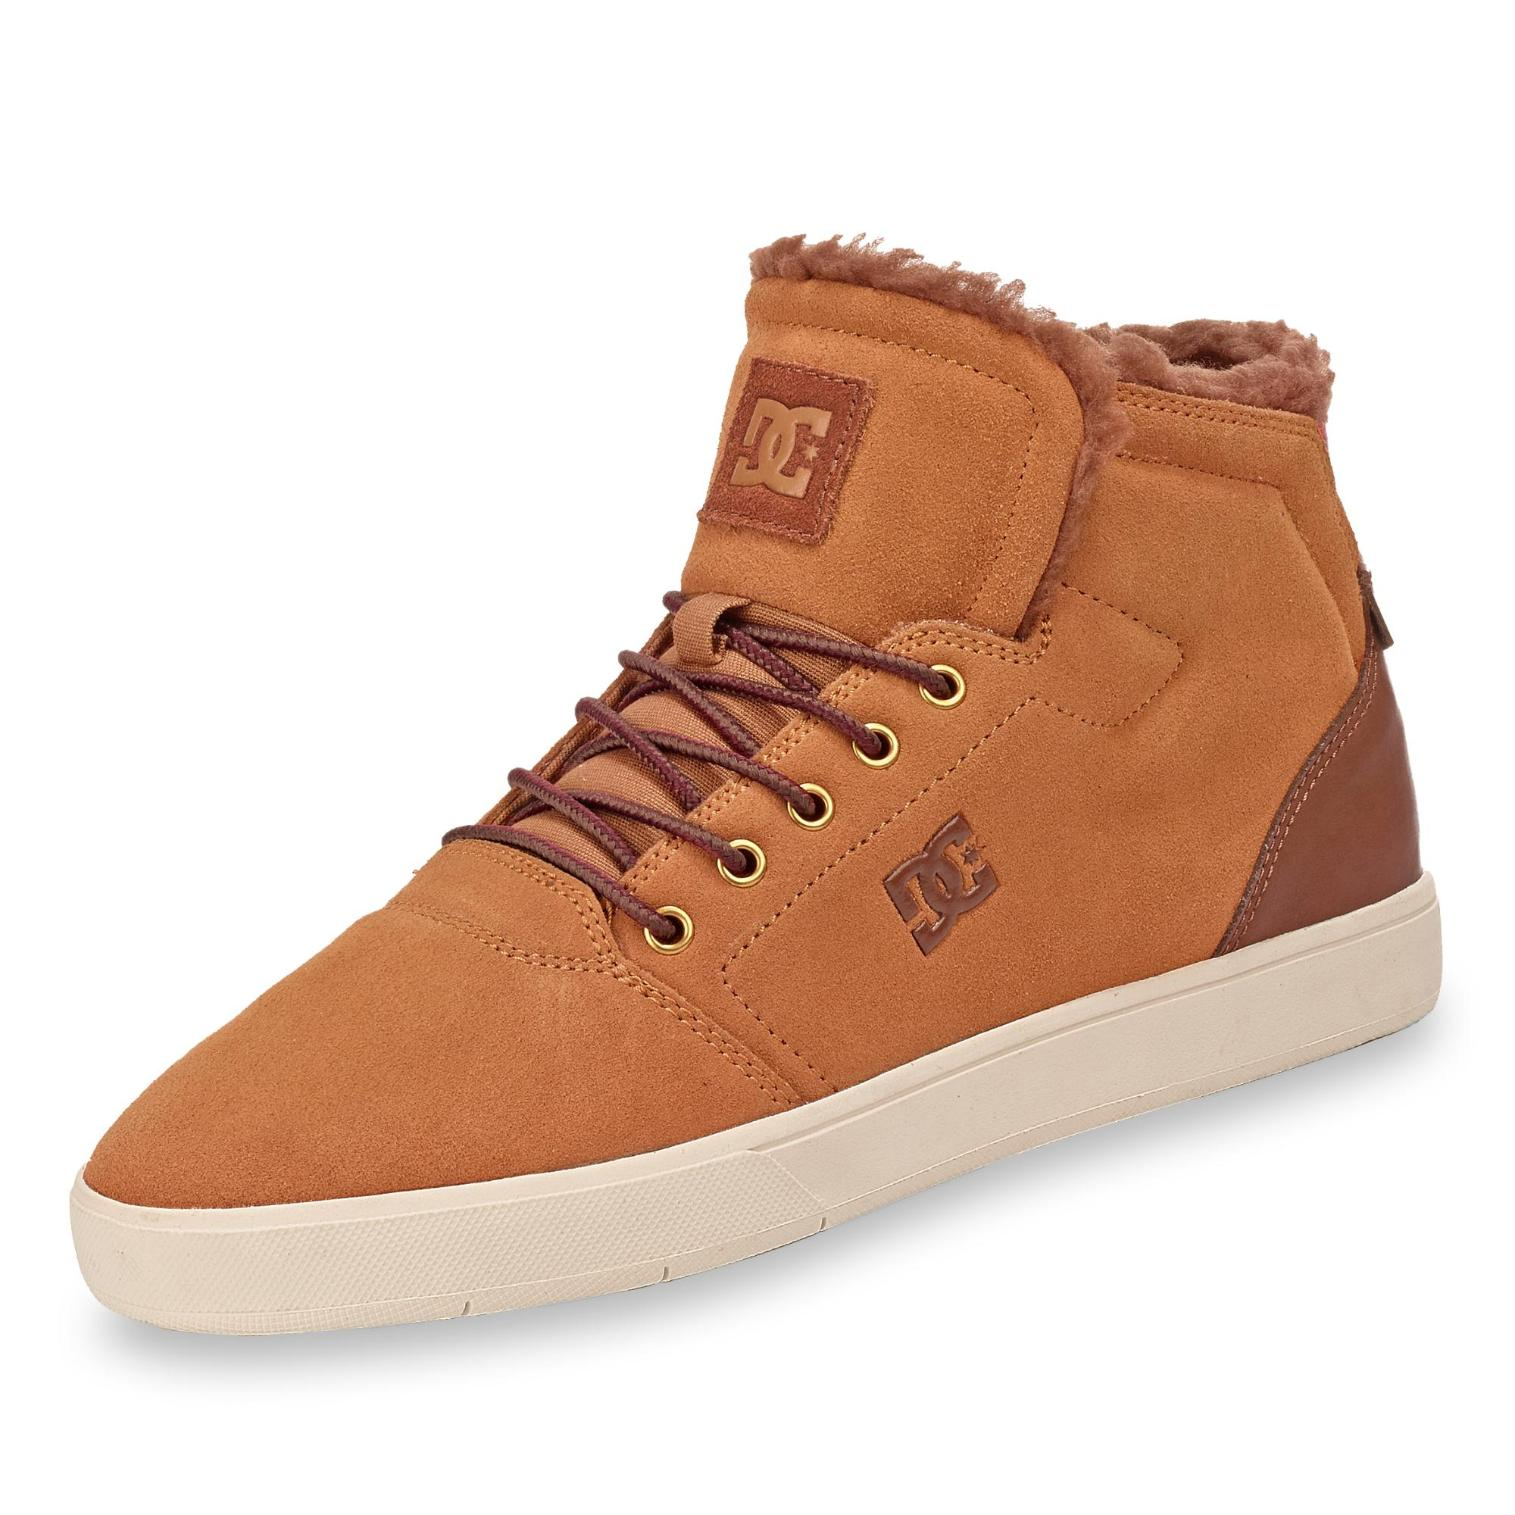 DC in Sneakerboots in DC Farbe honig accc23